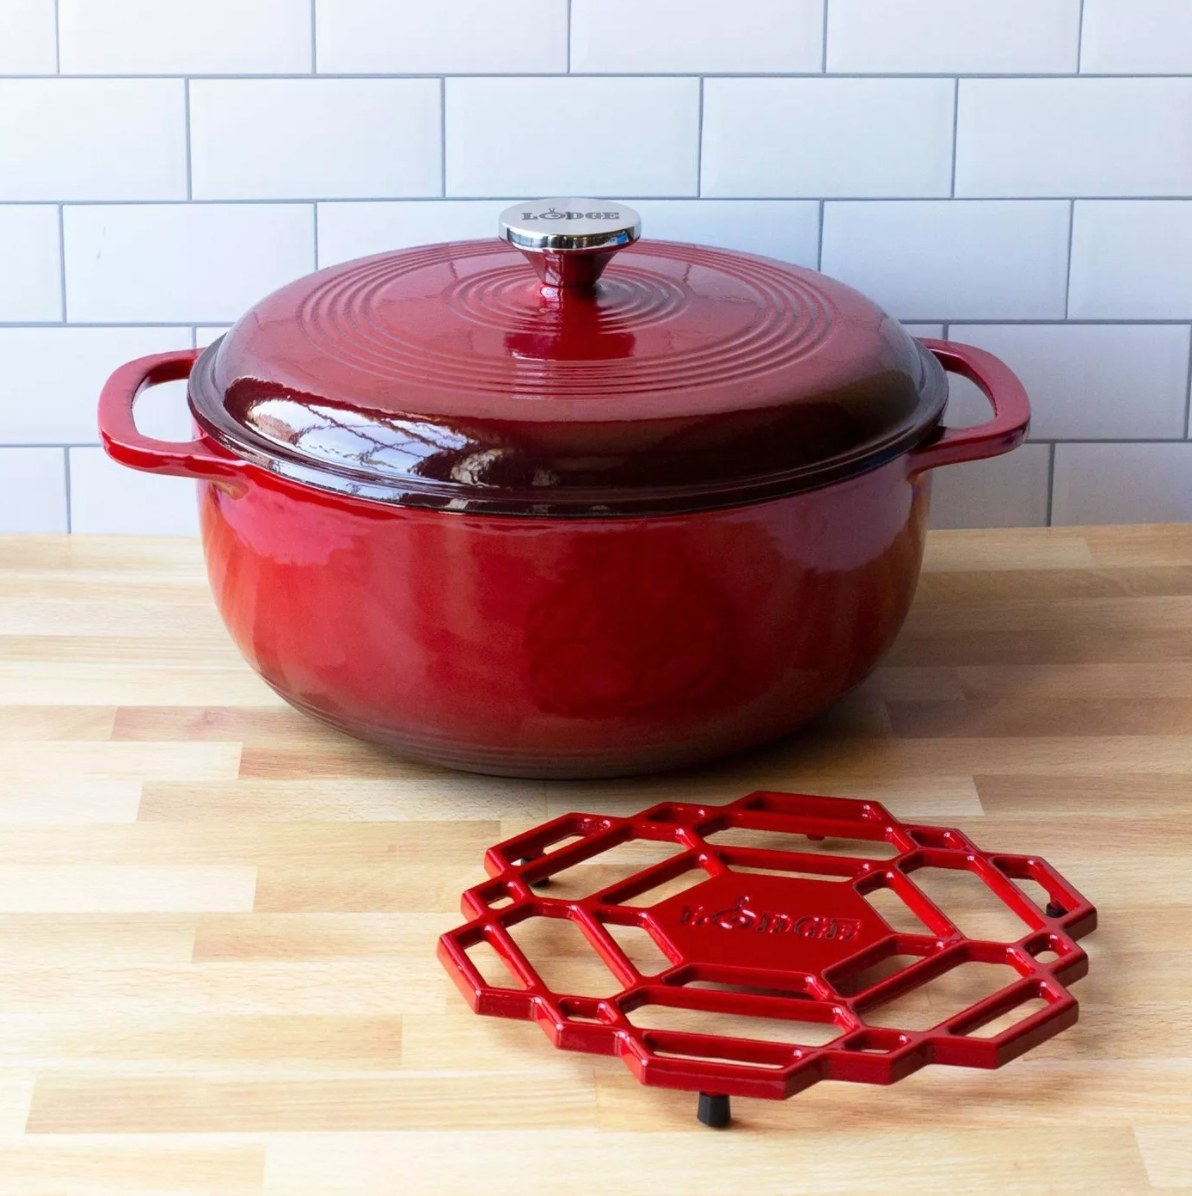 The cast iron dutch oven in red